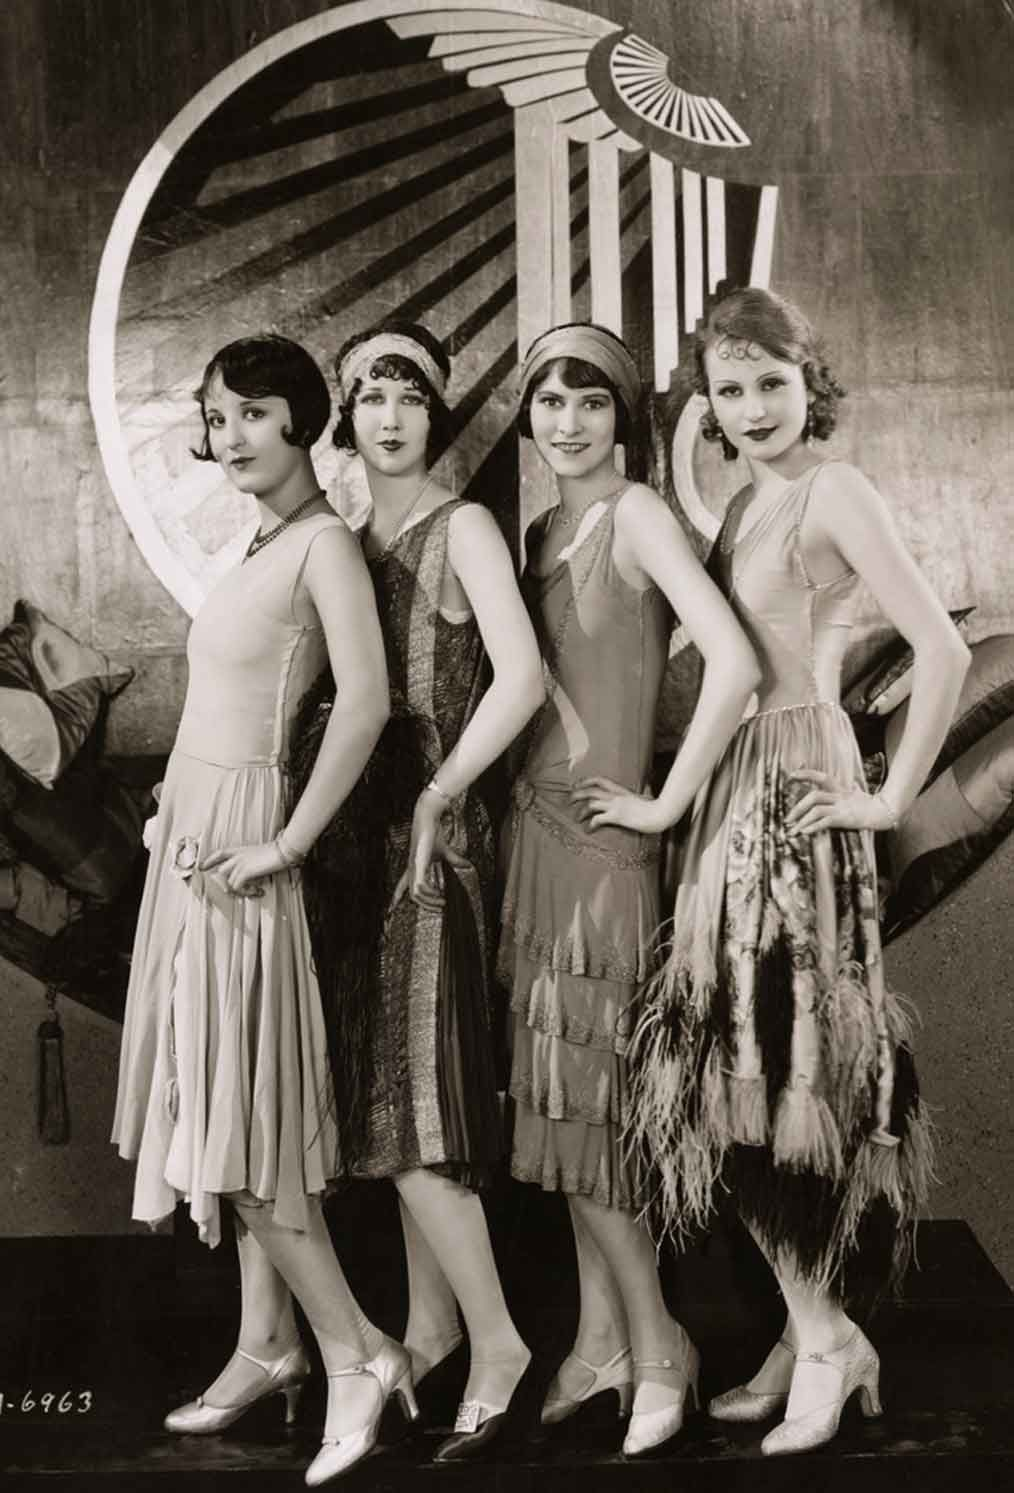 History of Women's Fashion, 1920-1929 | Fashion Timeline ...